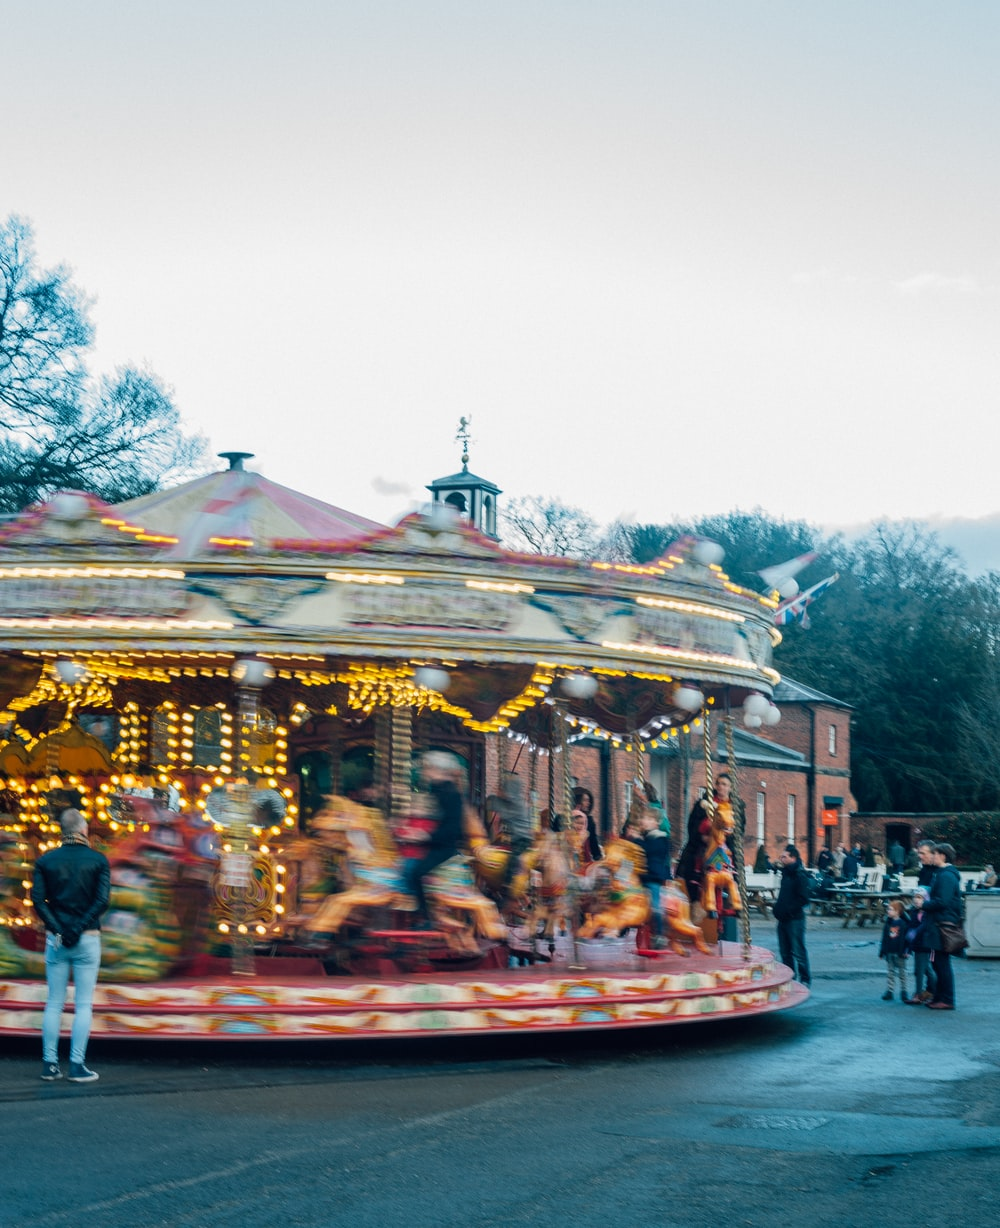 time-lapse photography of a spinning carousel under a calm blue sky